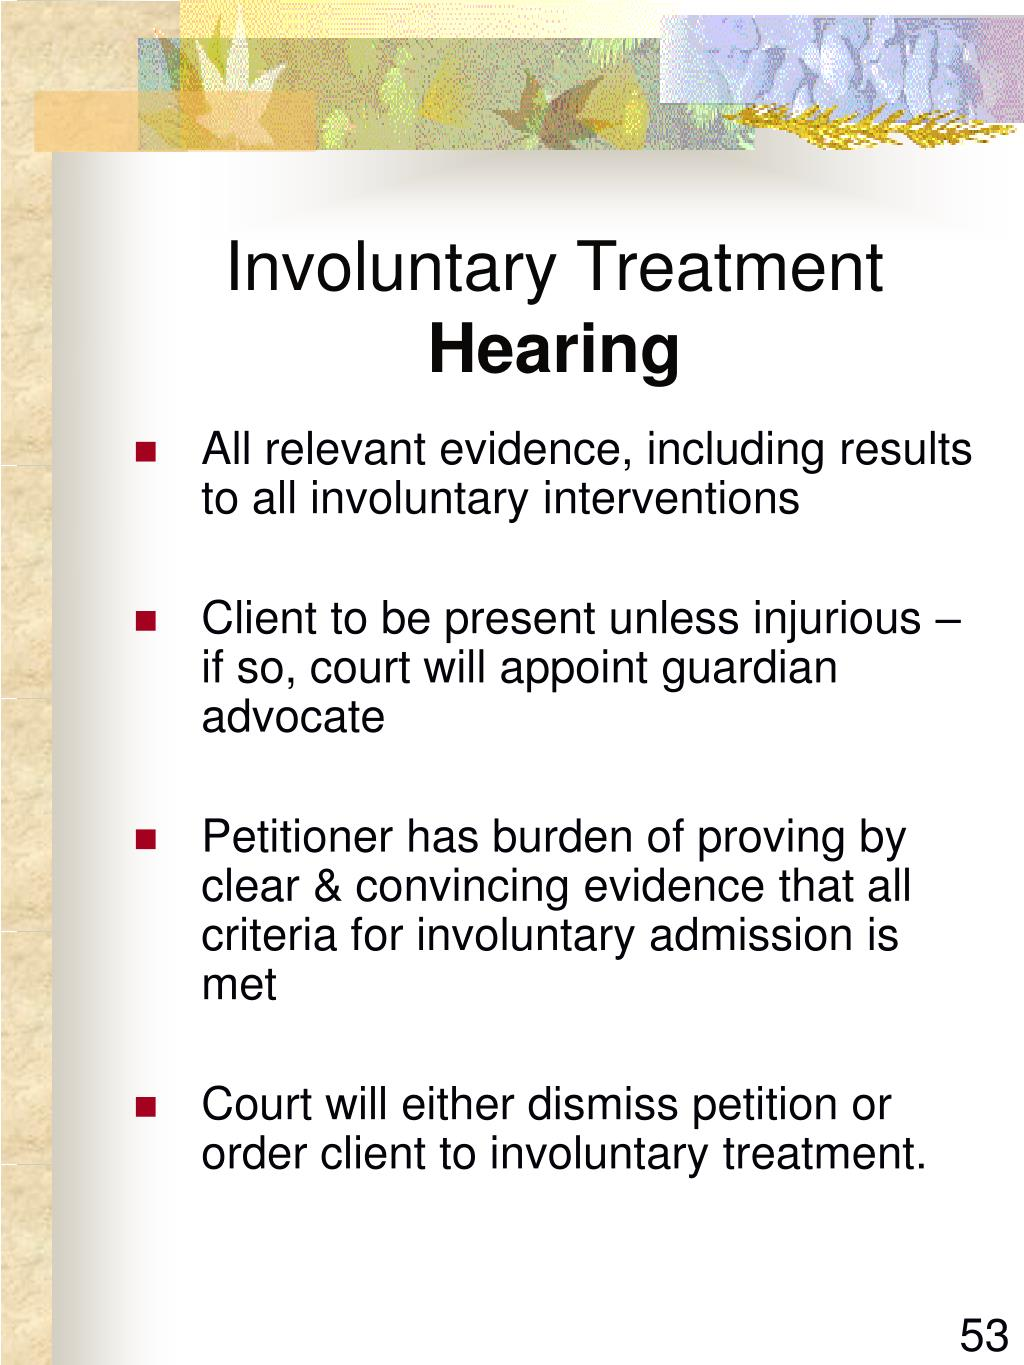 Involuntary Treatment